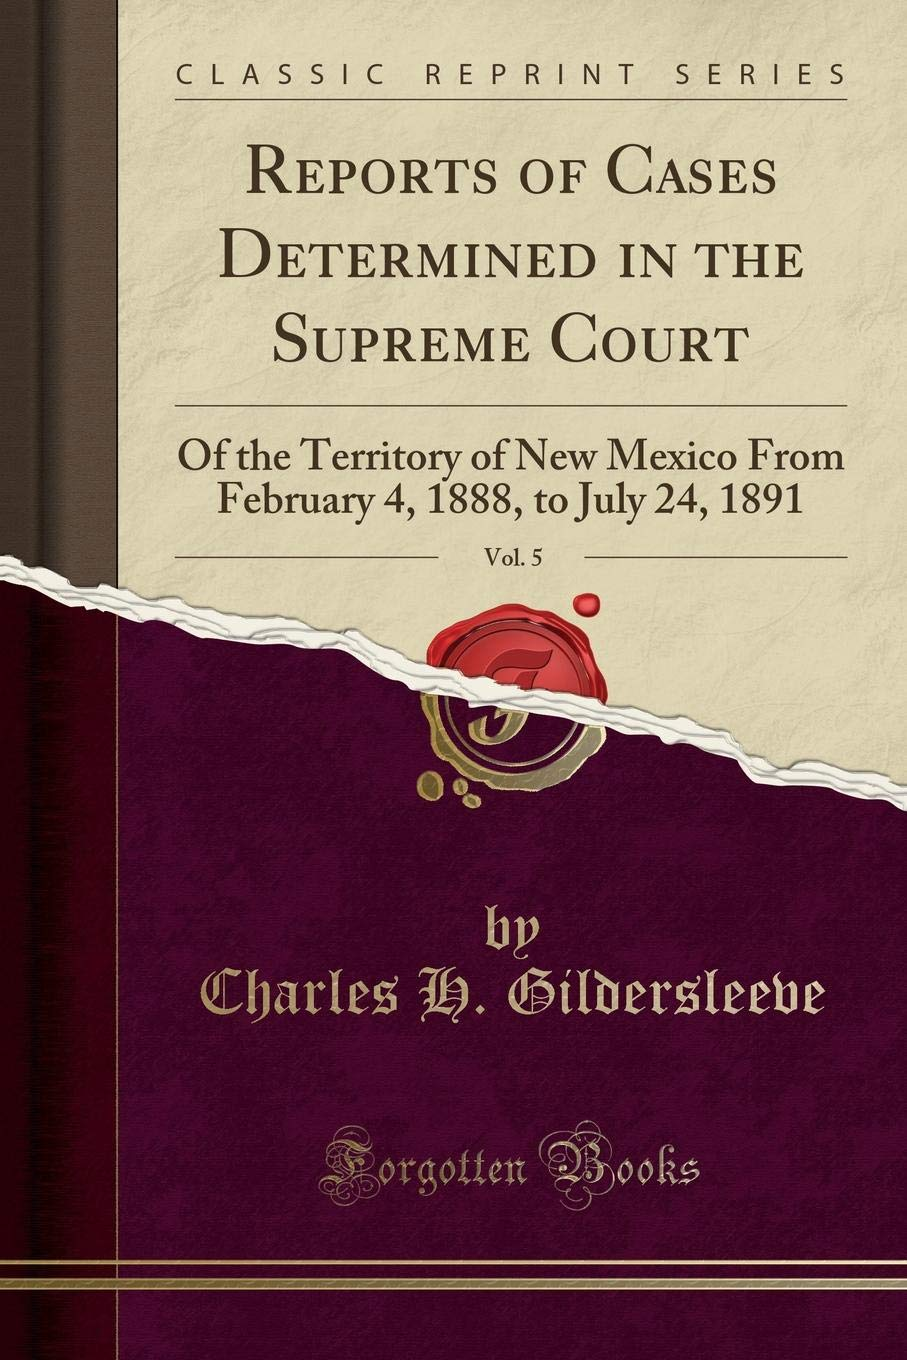 Download Reports of Cases Determined in the Supreme Court, Vol. 5: Of the Territory of New Mexico From February 4, 1888, to July 24, 1891 (Classic Reprint) pdf